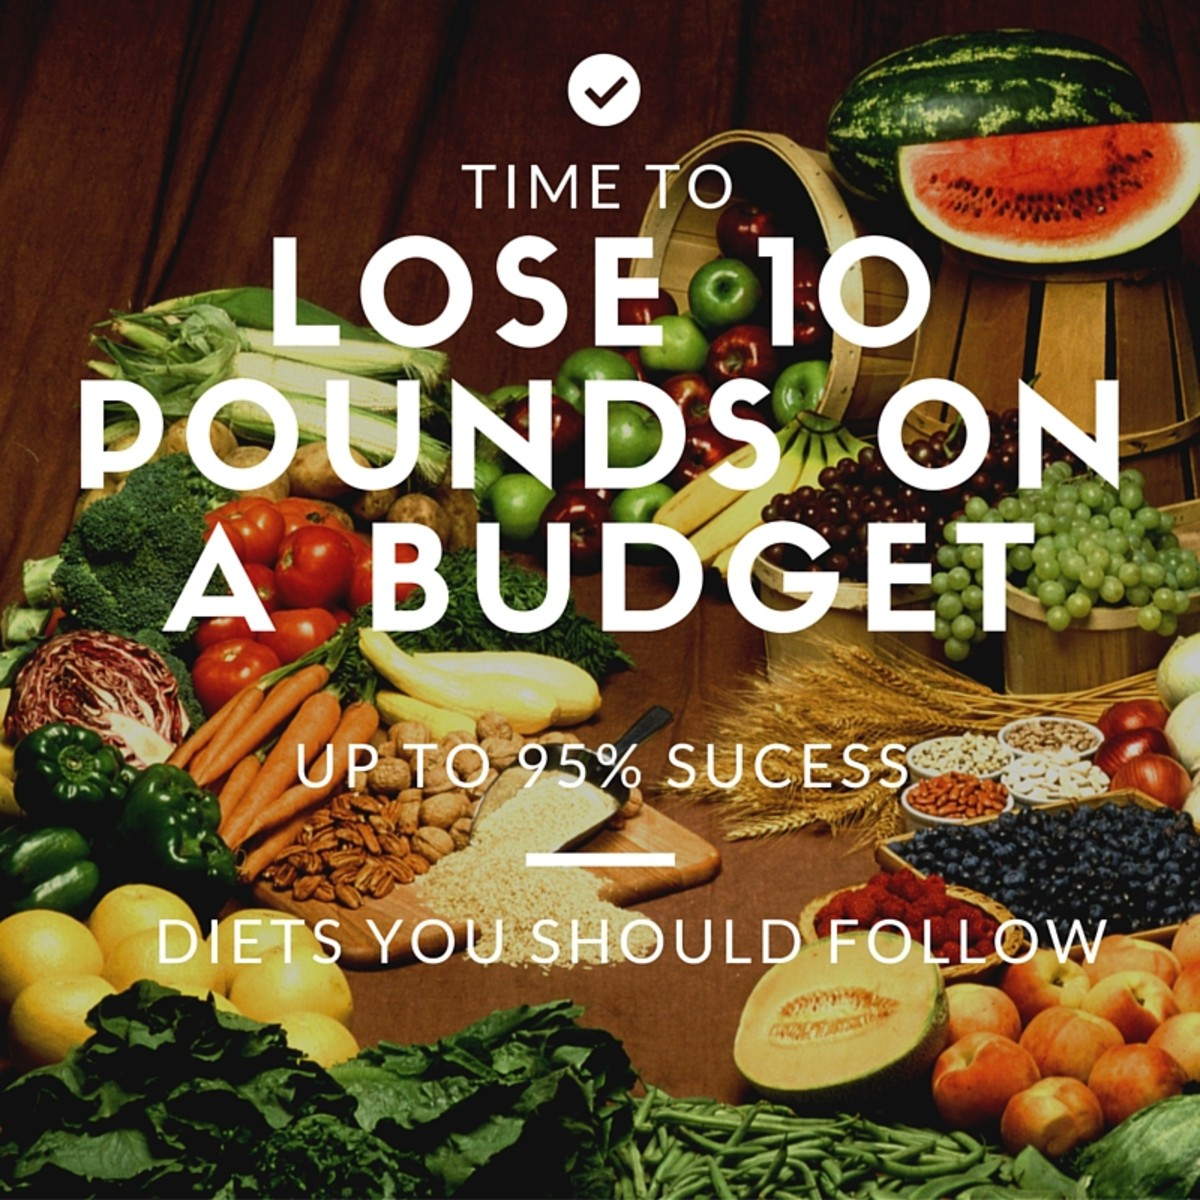 6 Ways to Lose 10 Pounds Fast on a Budget